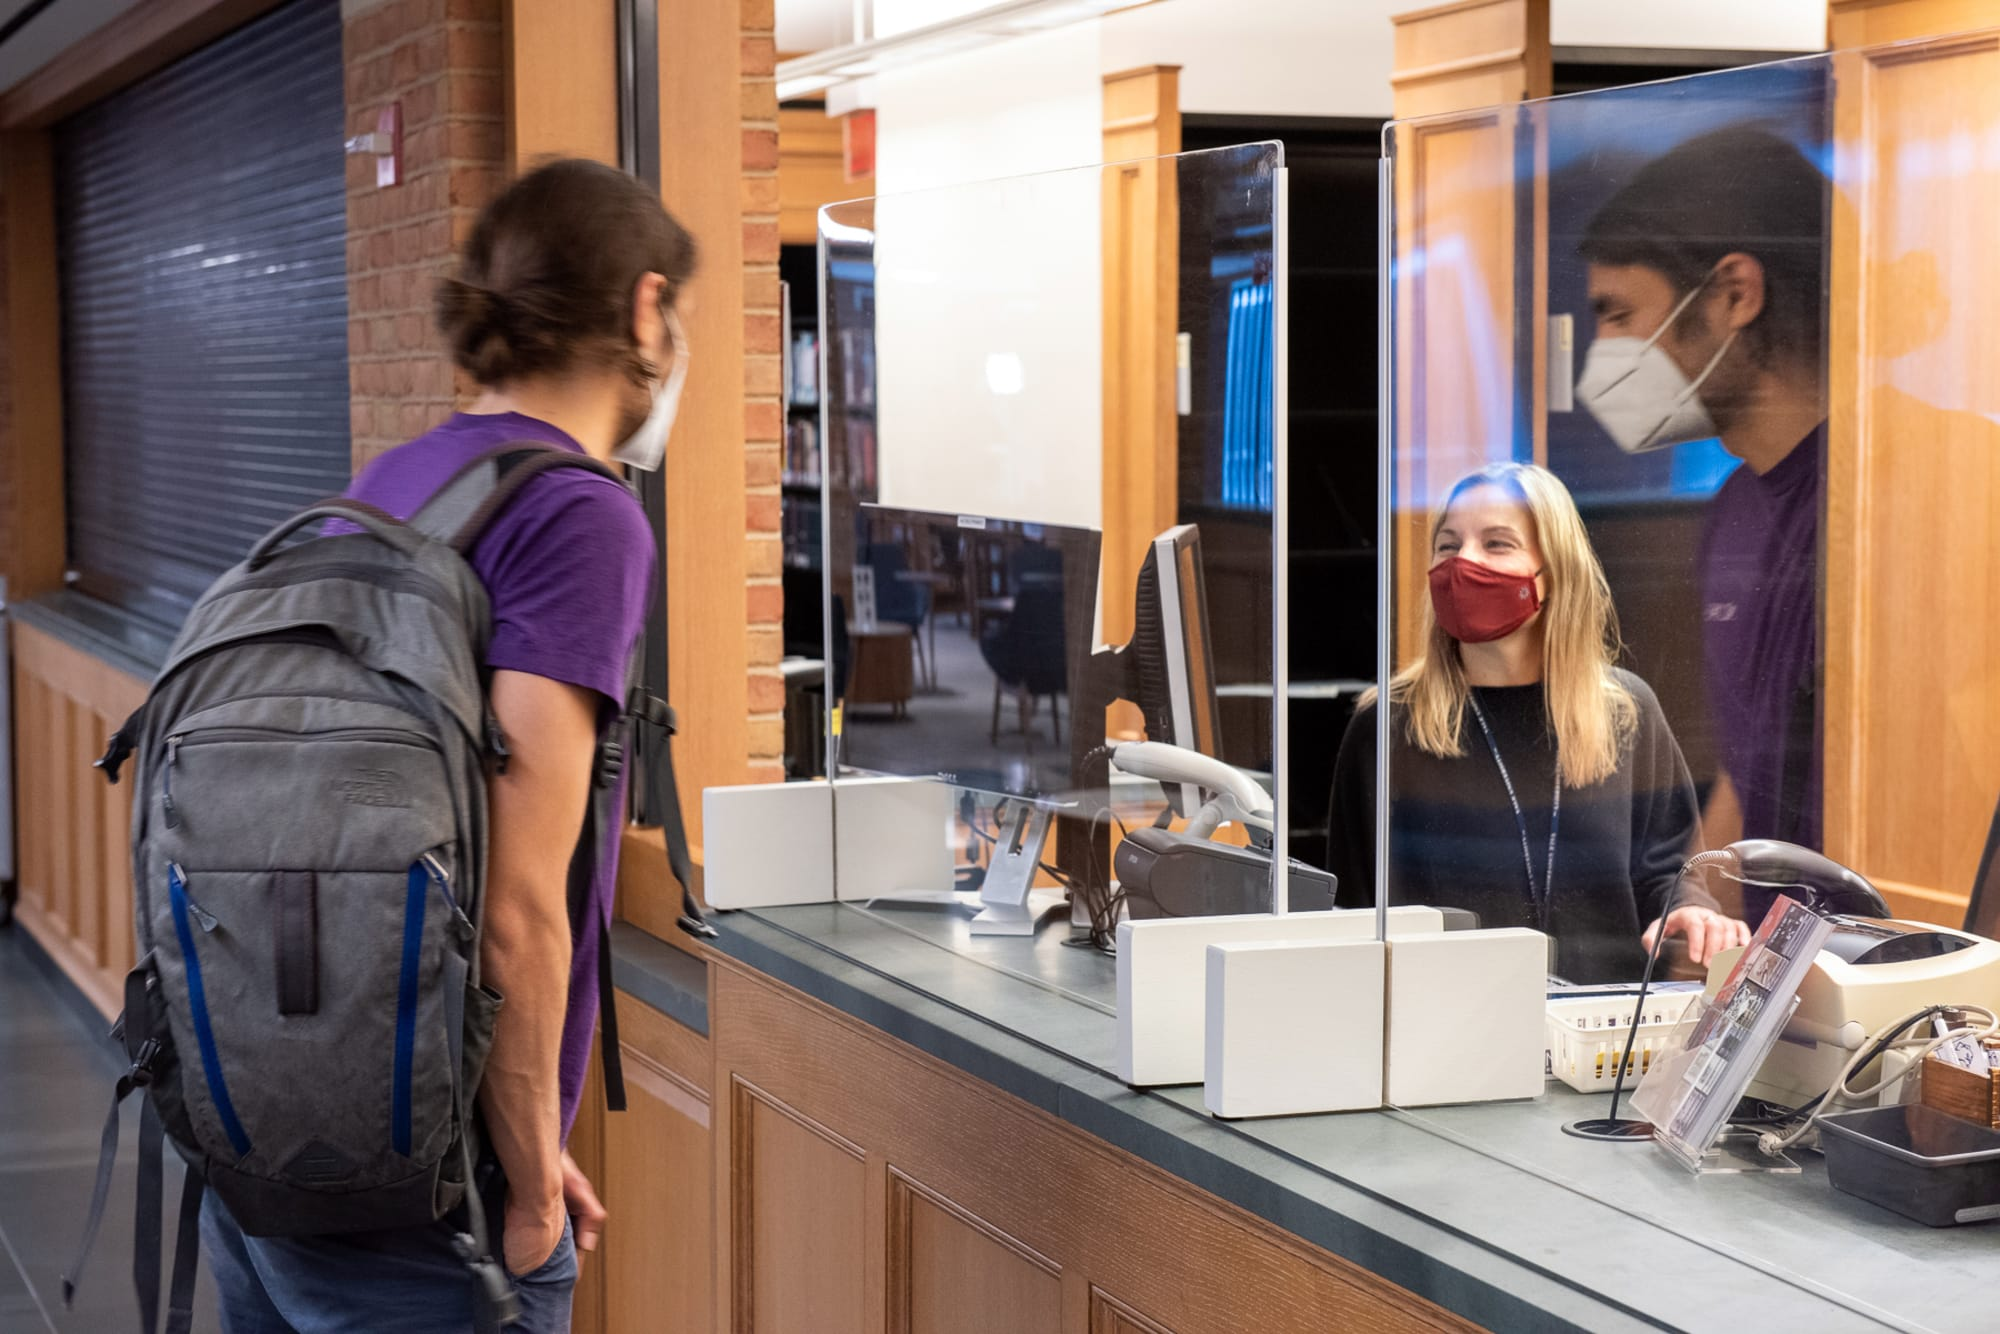 Library staff behind Plexiglass barrier assists student at service desk in Bass Library.